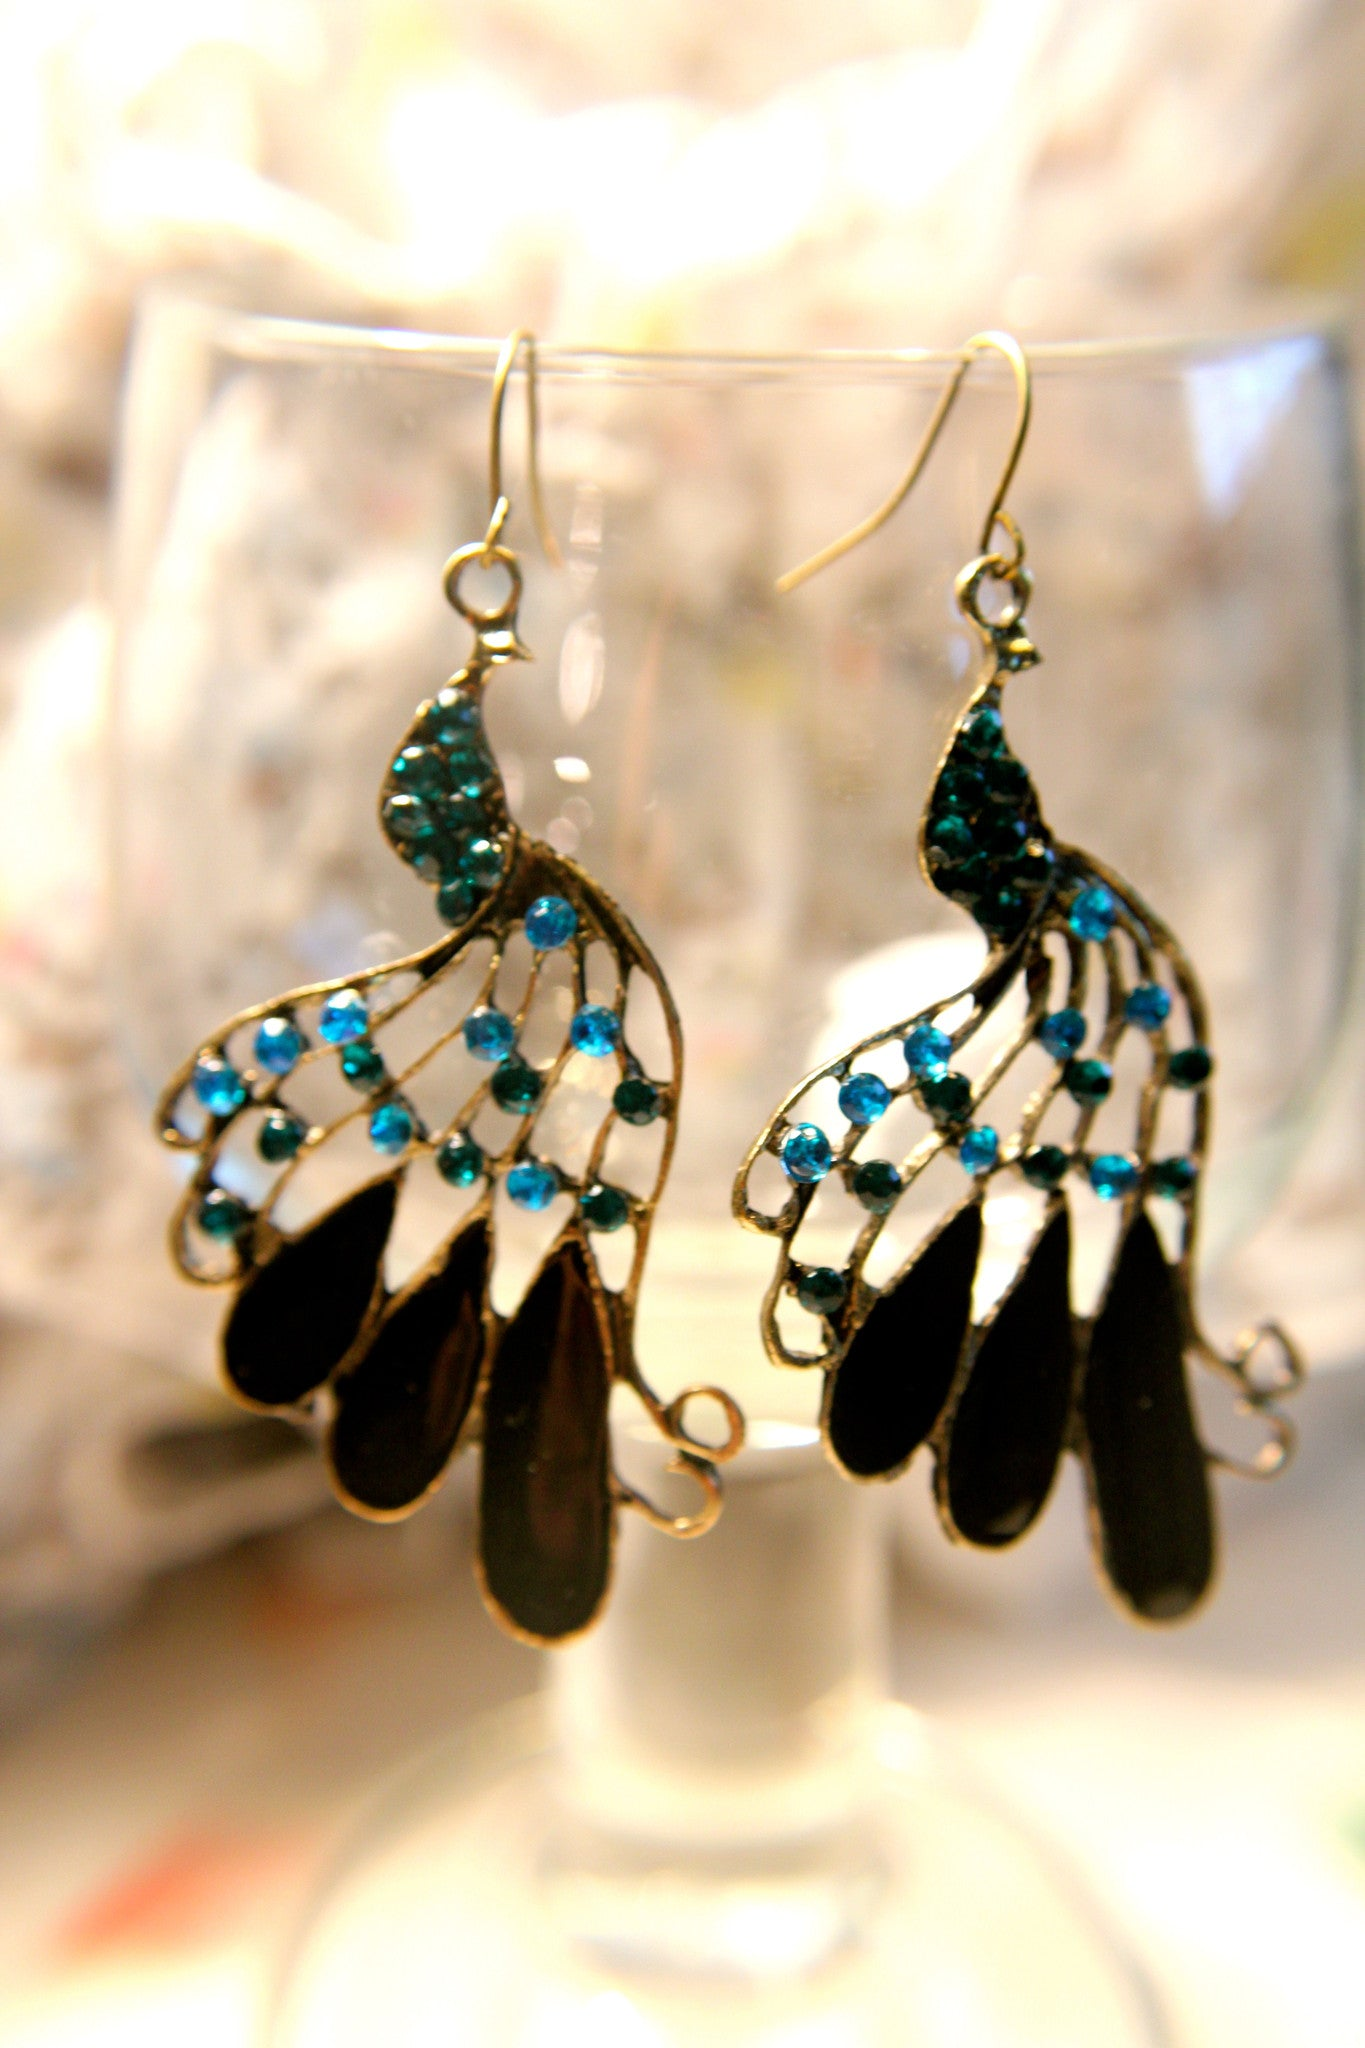 Polished Peacock Earrings